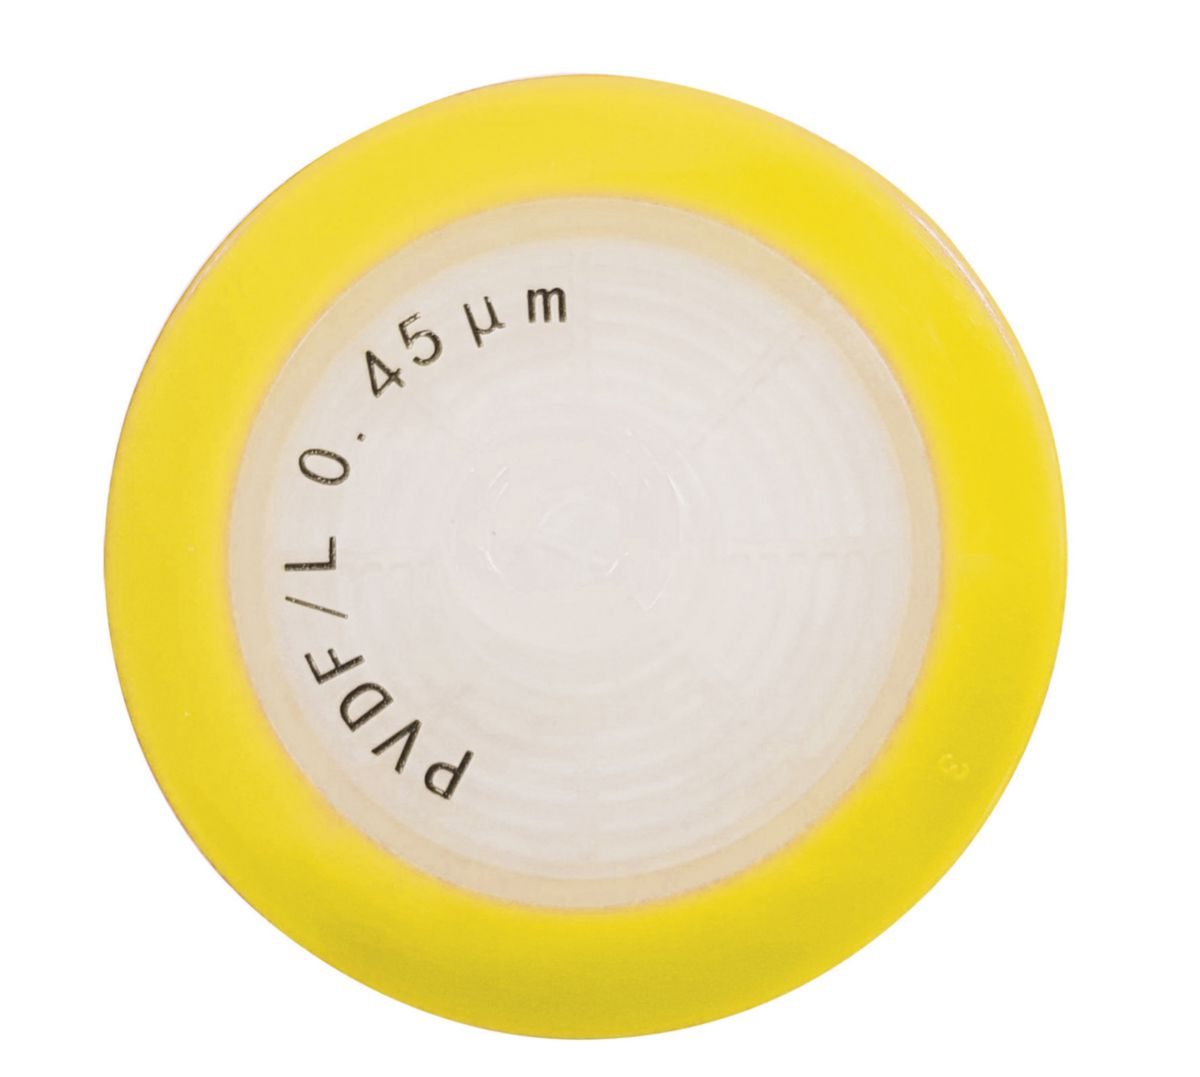 0.45 µm Syringe Filter, PVDF (Sterile), Yellow, ⌀ 33 Mm